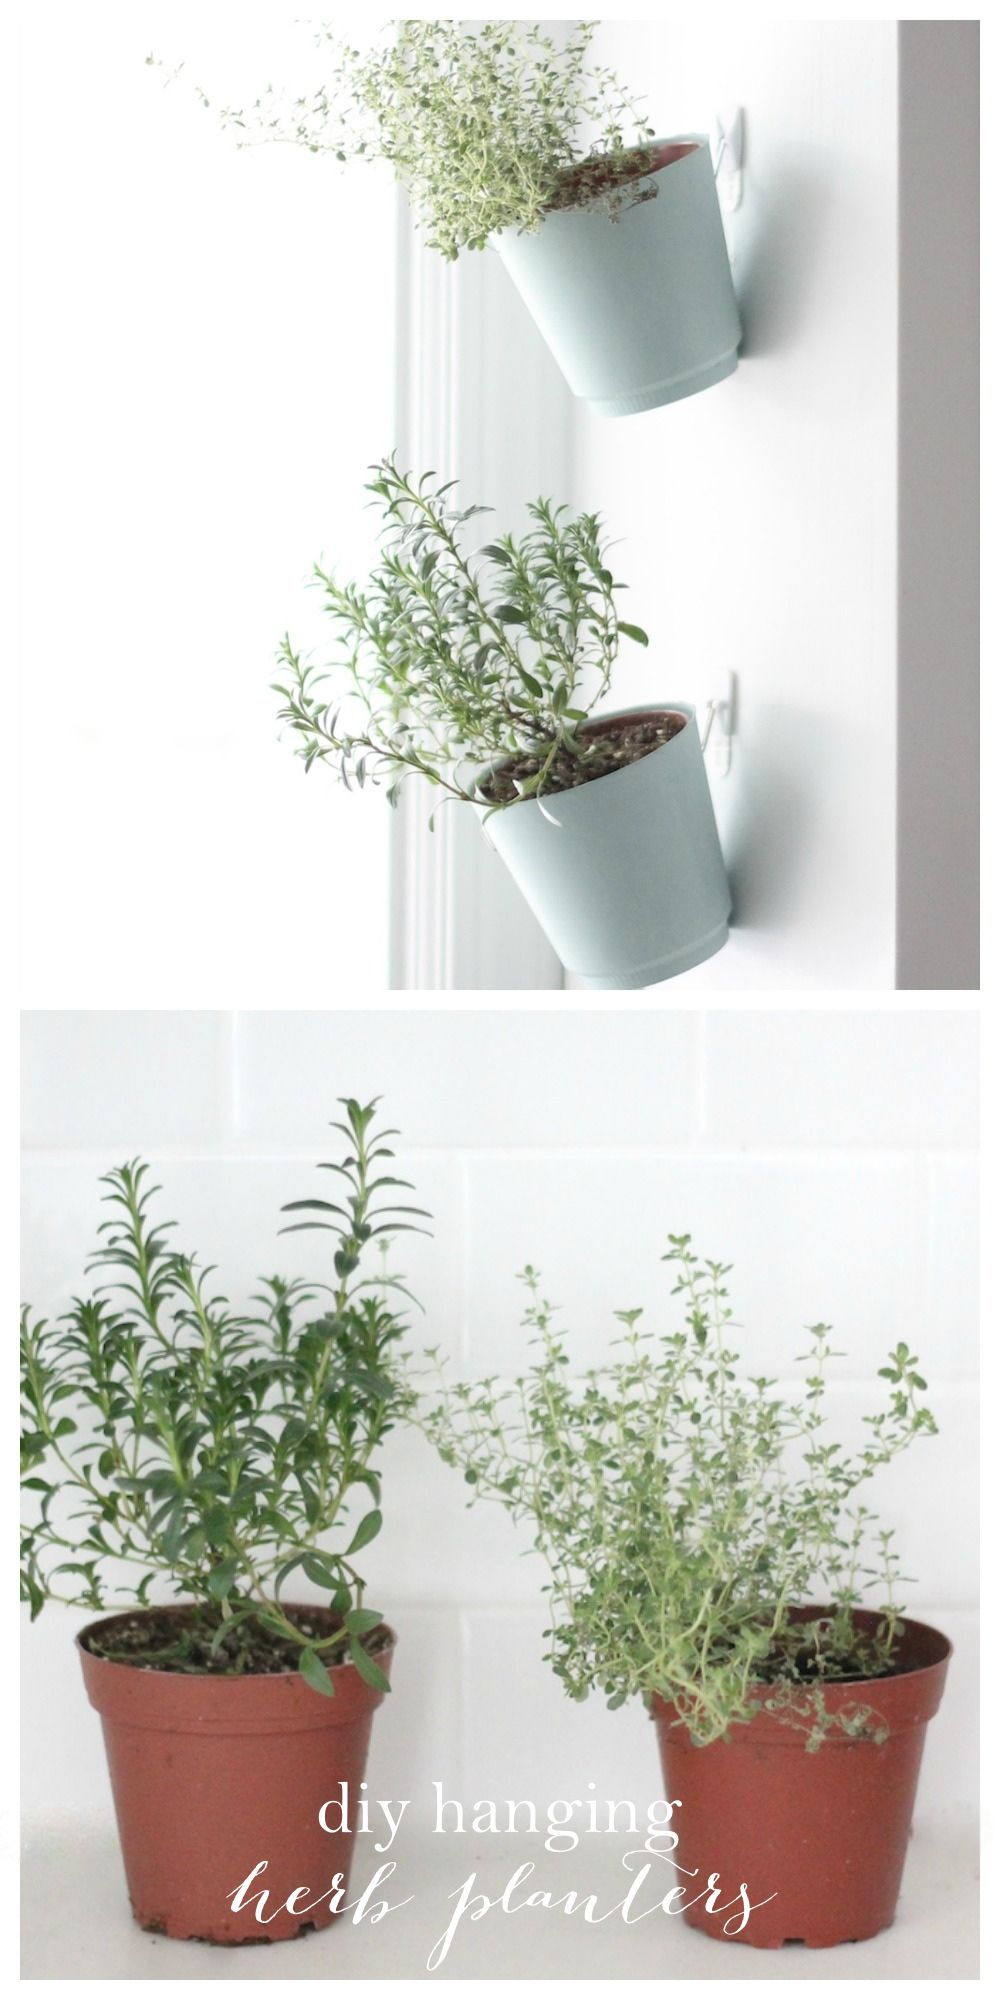 73 hanging planter ideas to try in all seasons pinterest diy